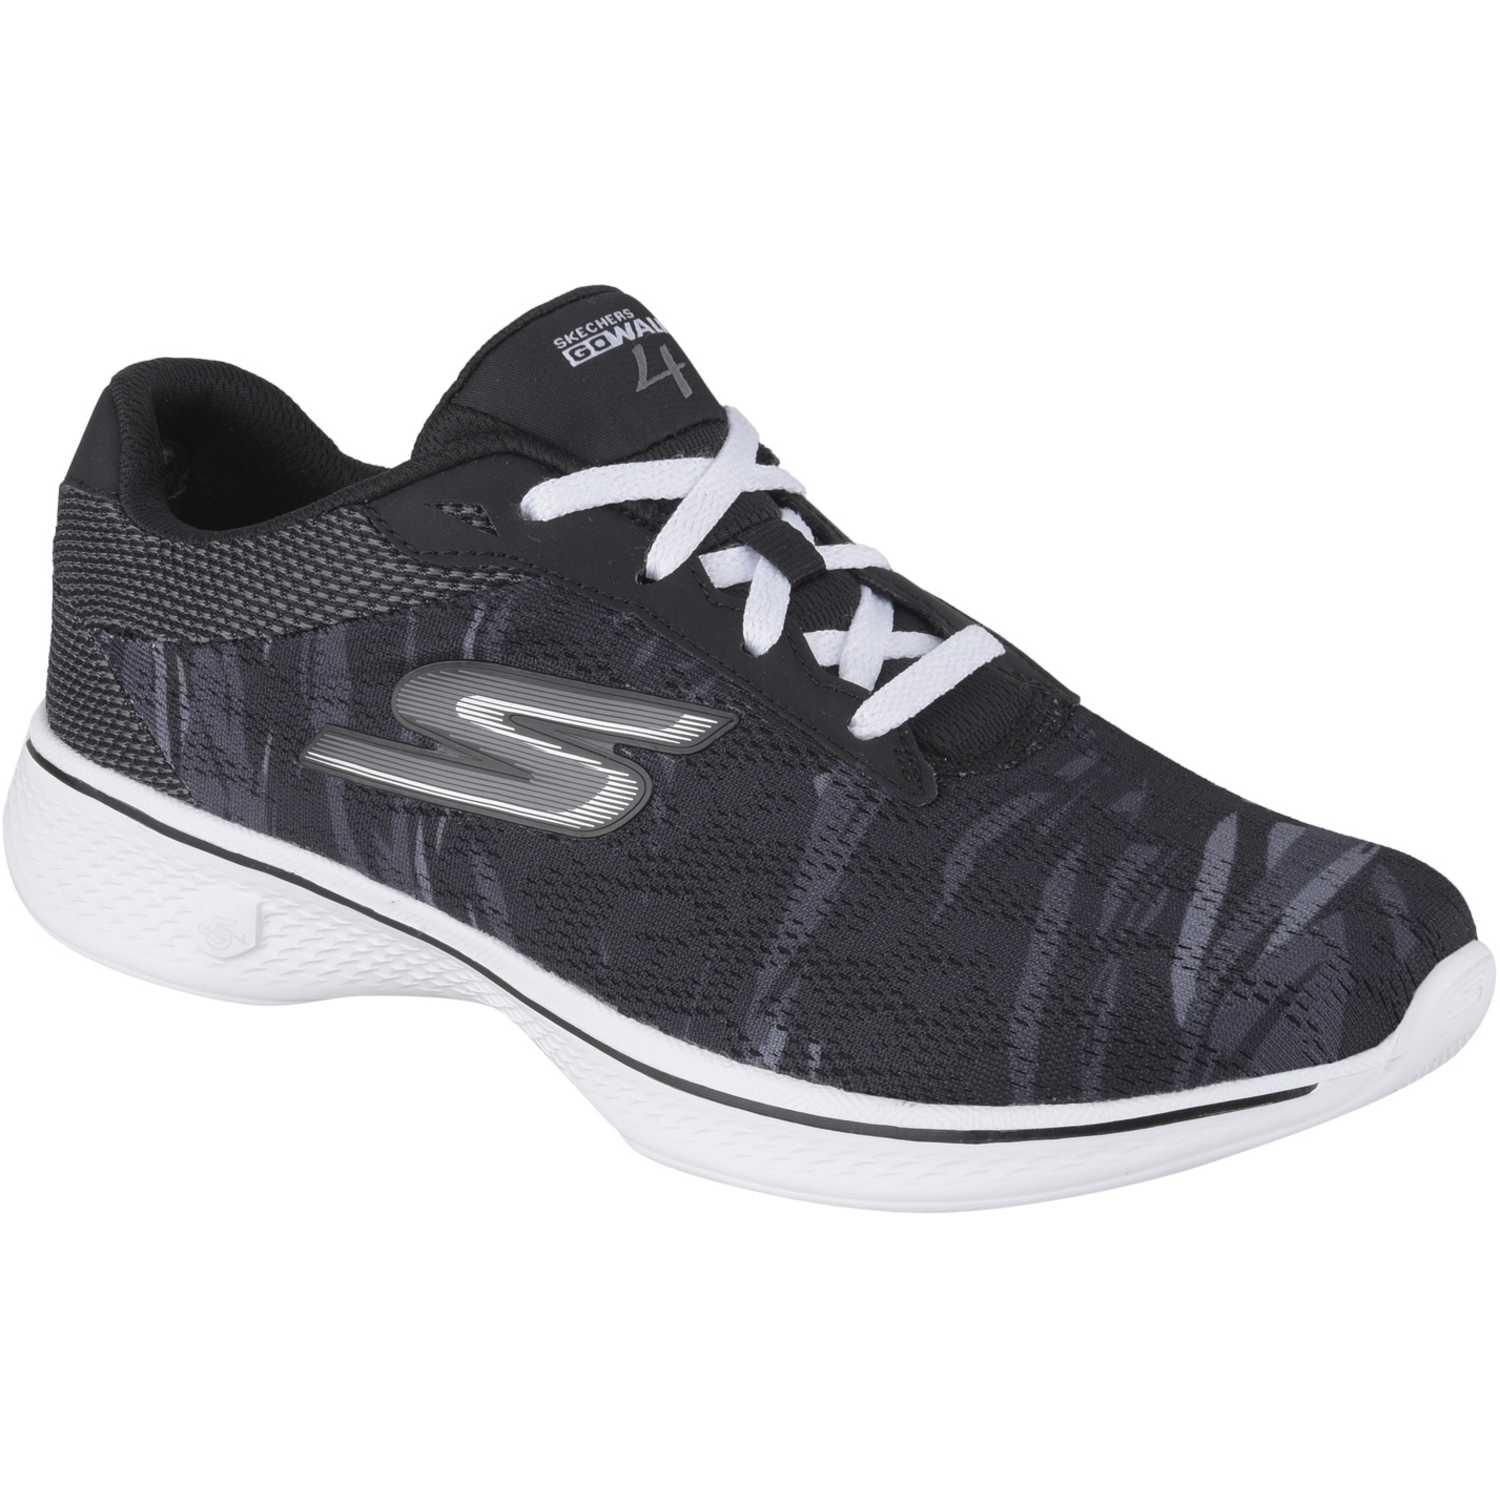 skechers zapatillas goga max